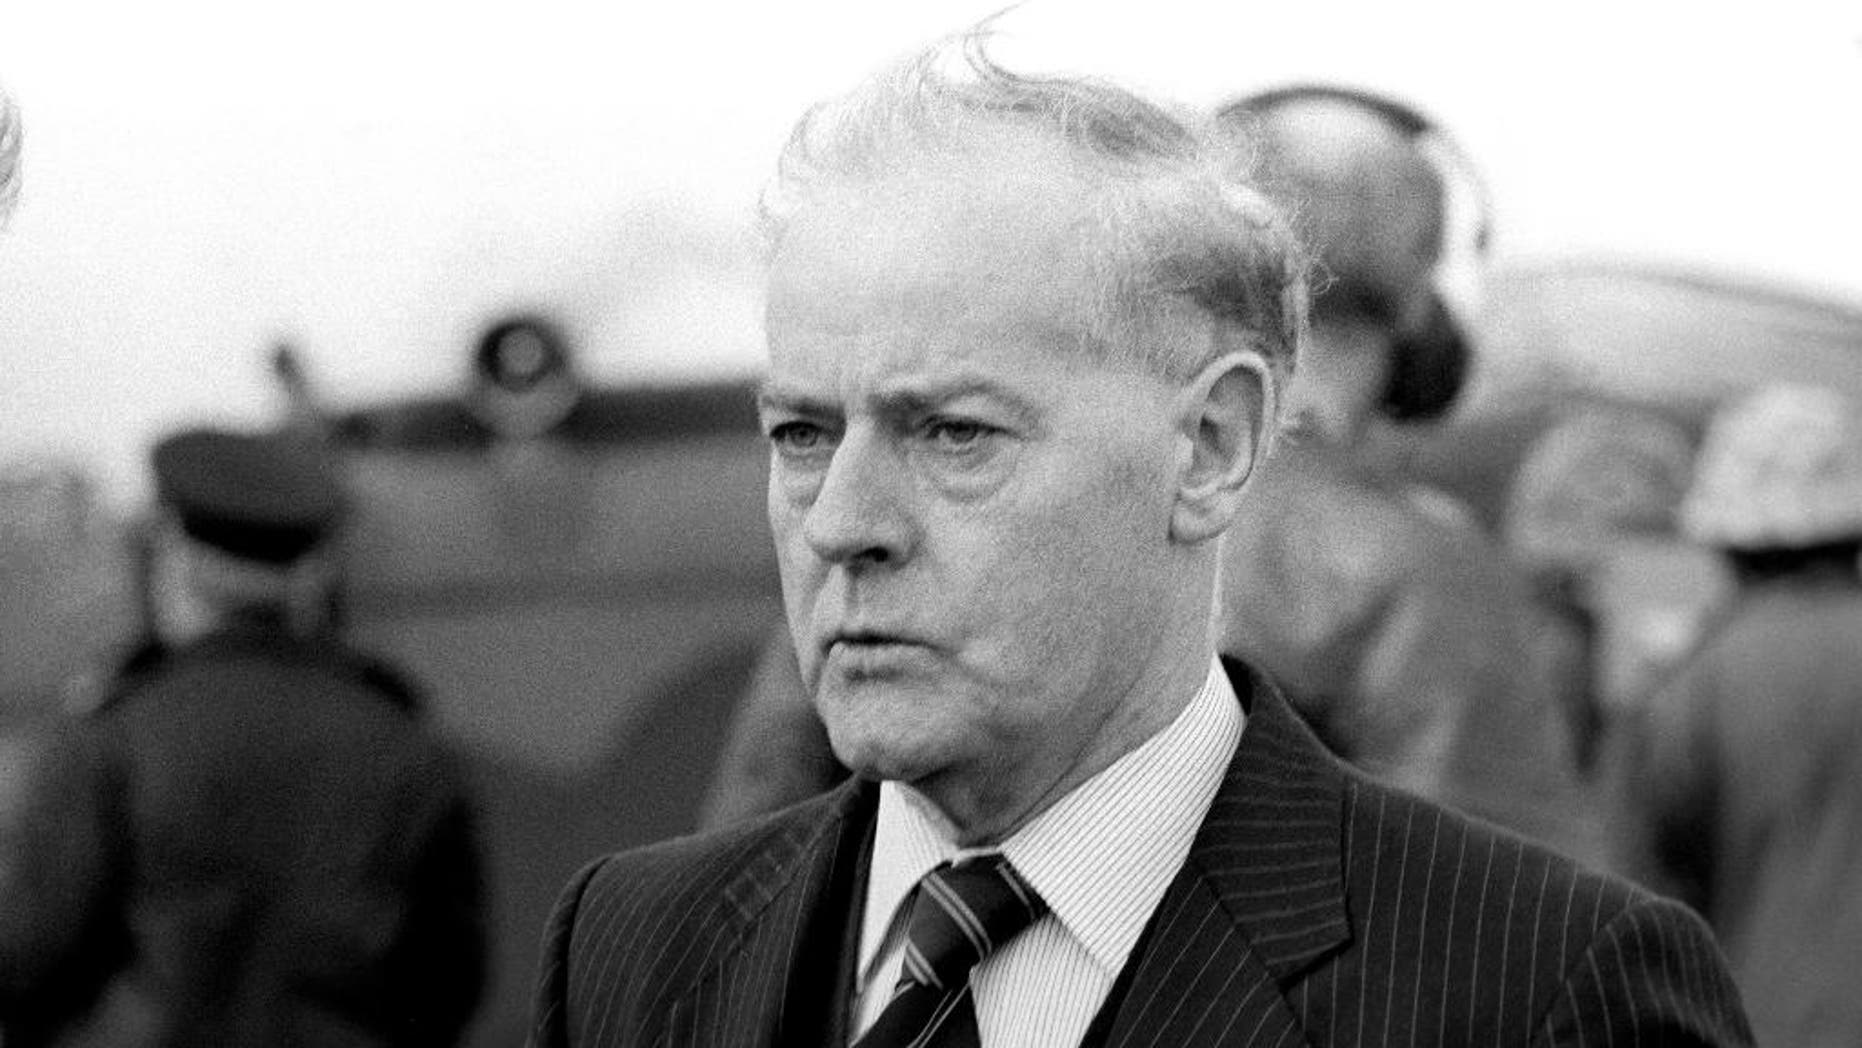 FILE - This is a  Oct. 20, 1982  file photo of former Ulster Unionist Party leader Jim Molyneaux. Molyneaux, a quiet but canny politician who led the Ulster Unionist Party through some of Northern Ireland's bloodiest years and the early period of peacemaking, has died at the age of 94. Party colleagues and the Northern Ireland government confirmed his death Monday Match 9, 2015 but did not specify a cause.  (AP Photo/PA, File) UNITED KINGDOM OUT